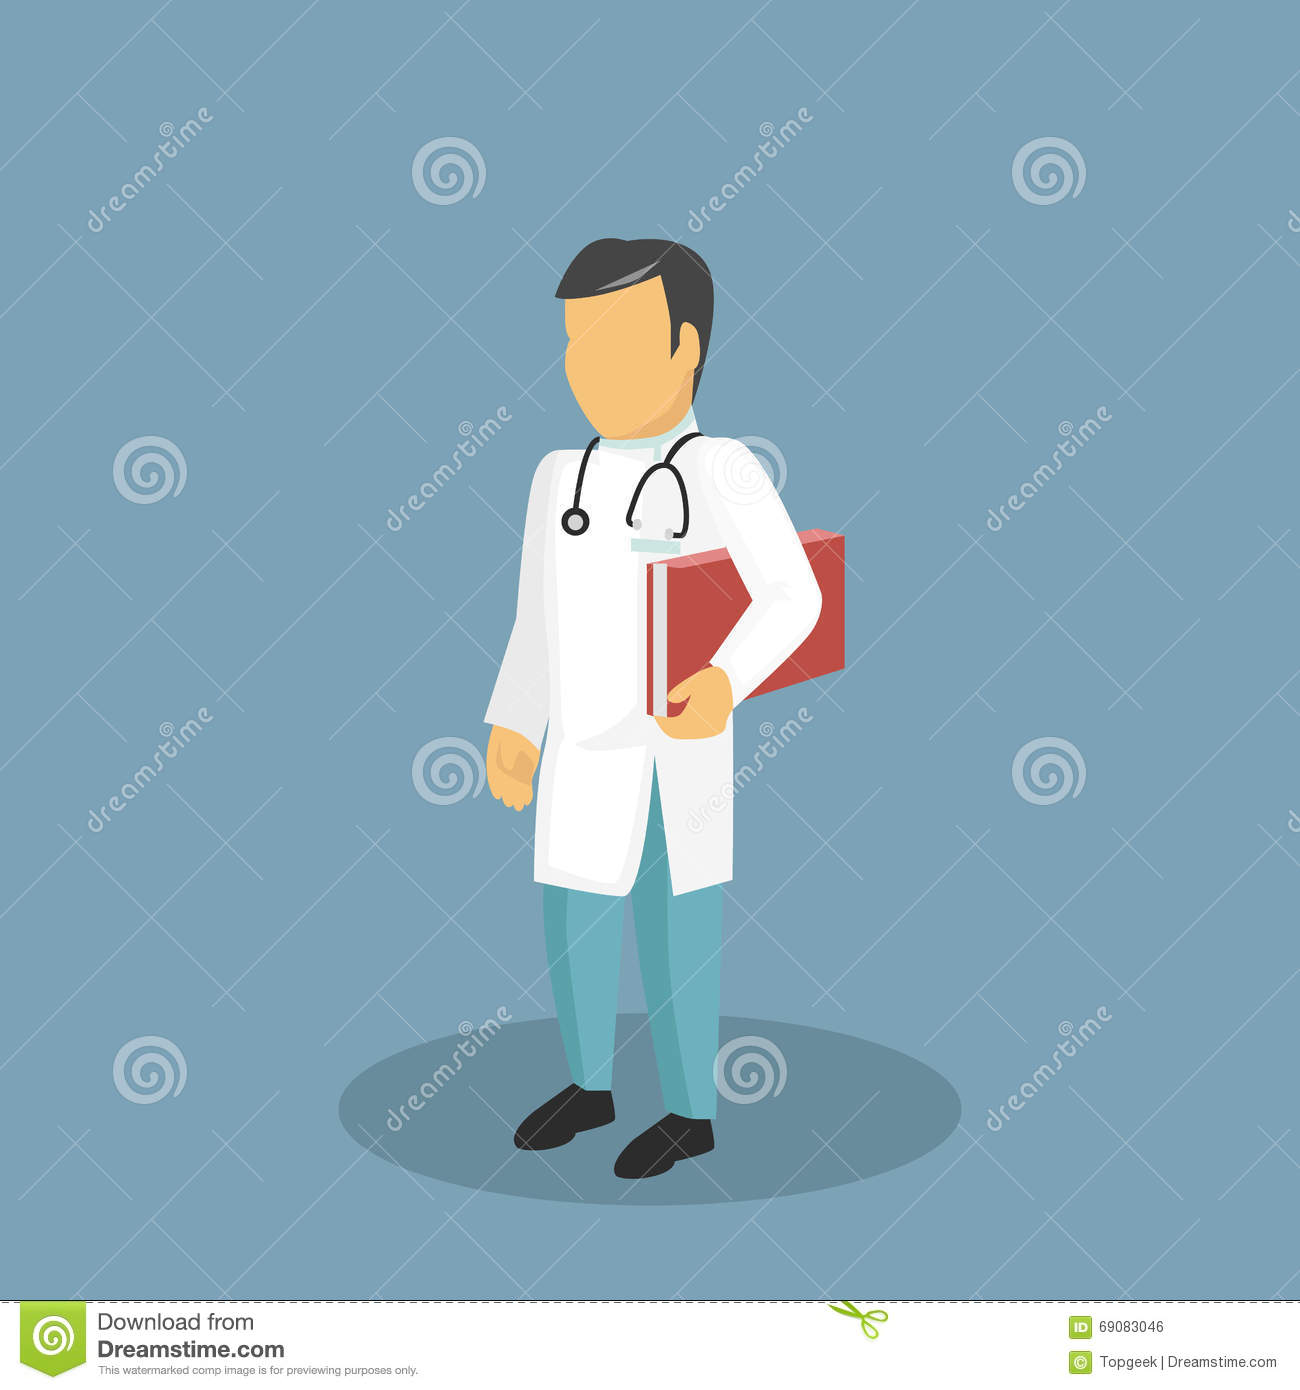 Profession Icon Doctor Design Flat Style Stock Vector ...